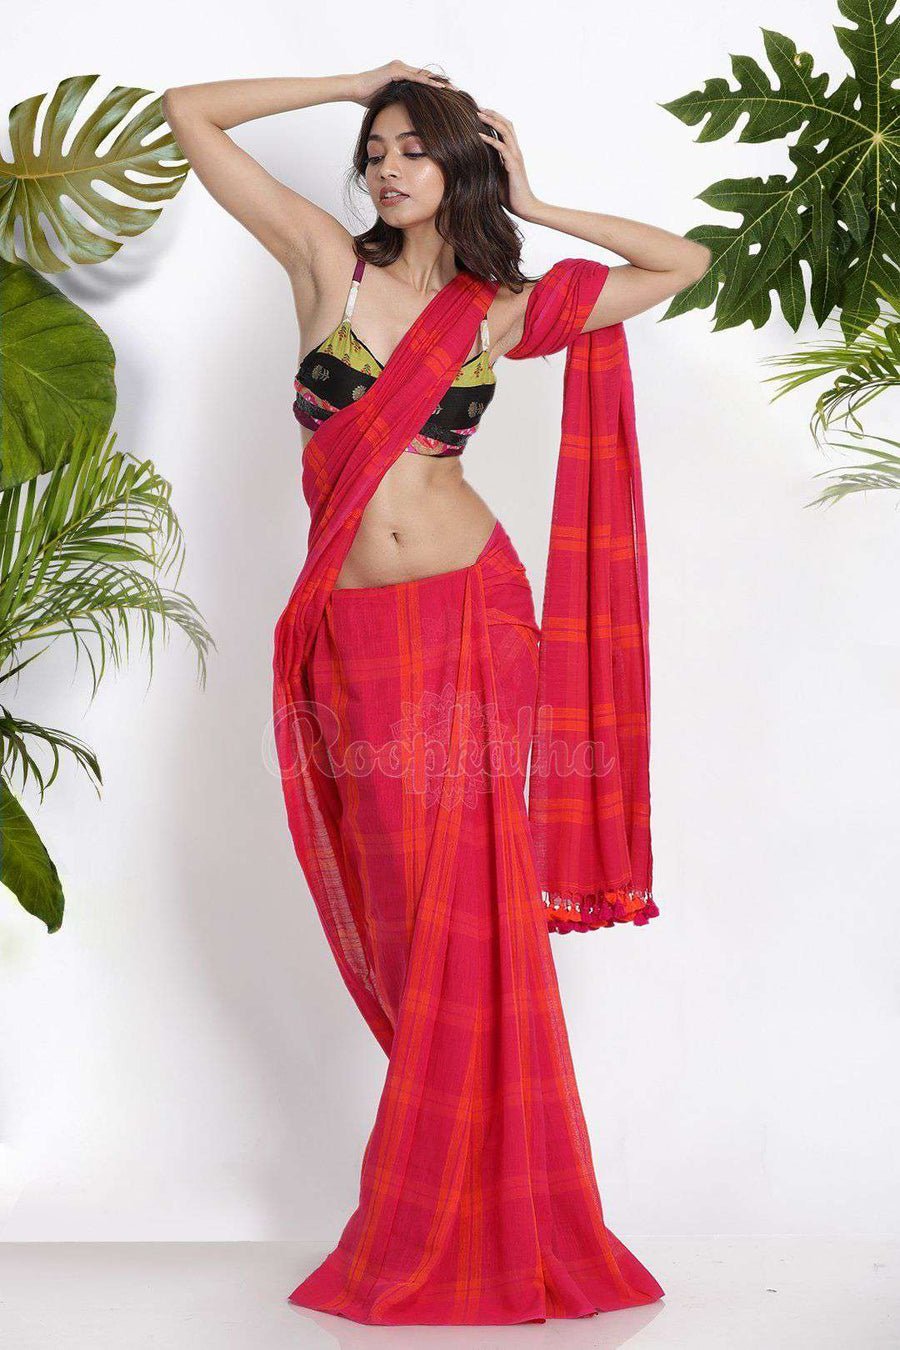 Pink Pure Cotton Saree With Checks Cotton Threads Of India Roopkatha - A Story of Art